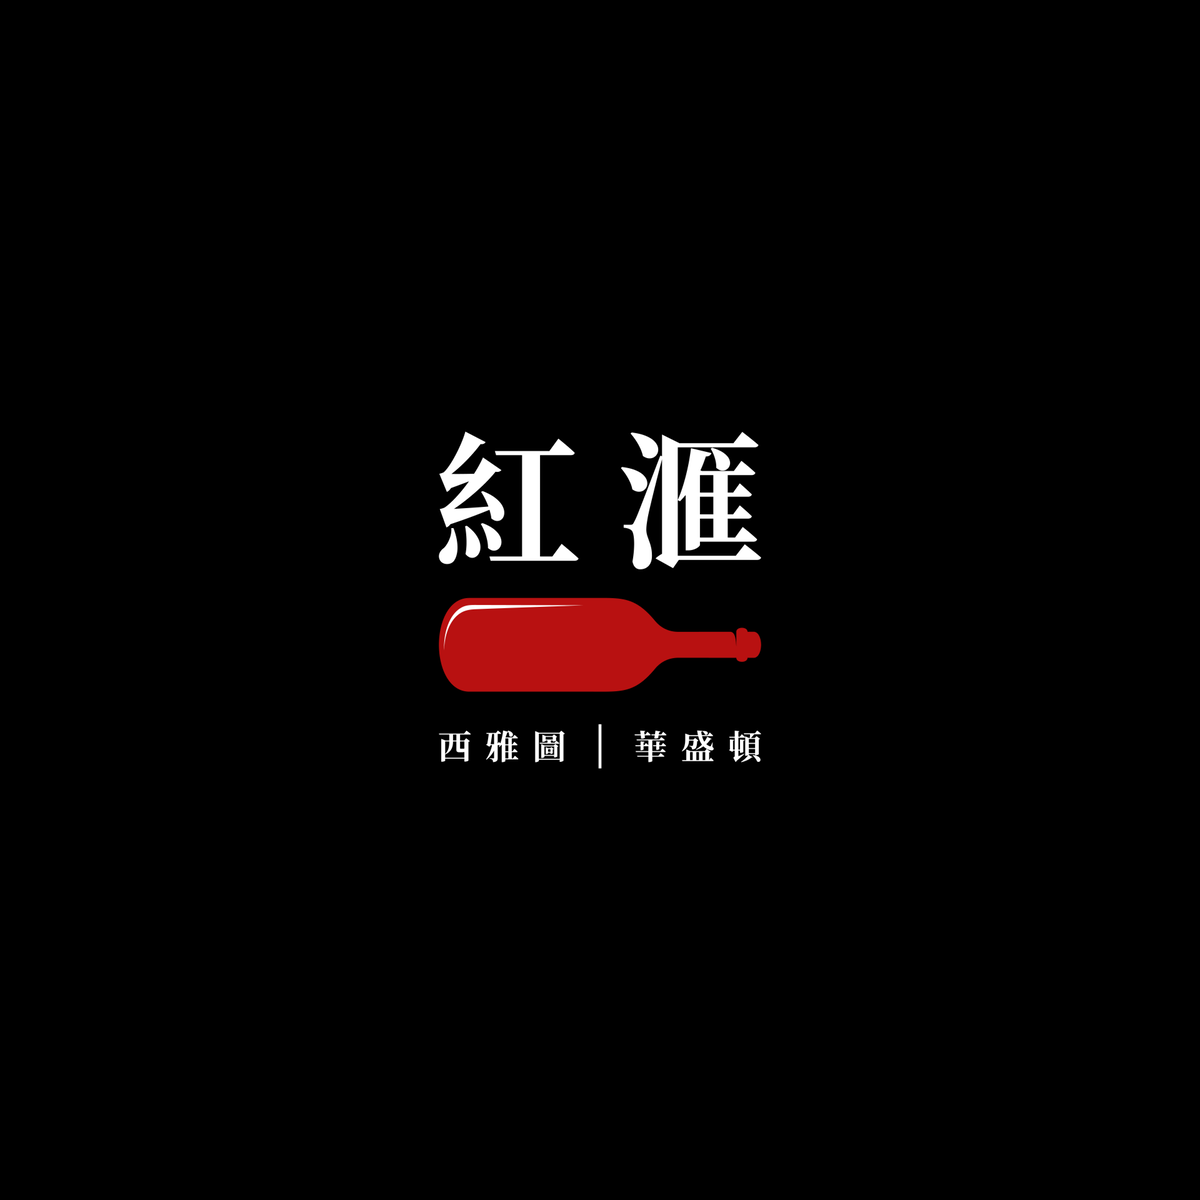 Applying Chinese Characters to Red Connexion Logo